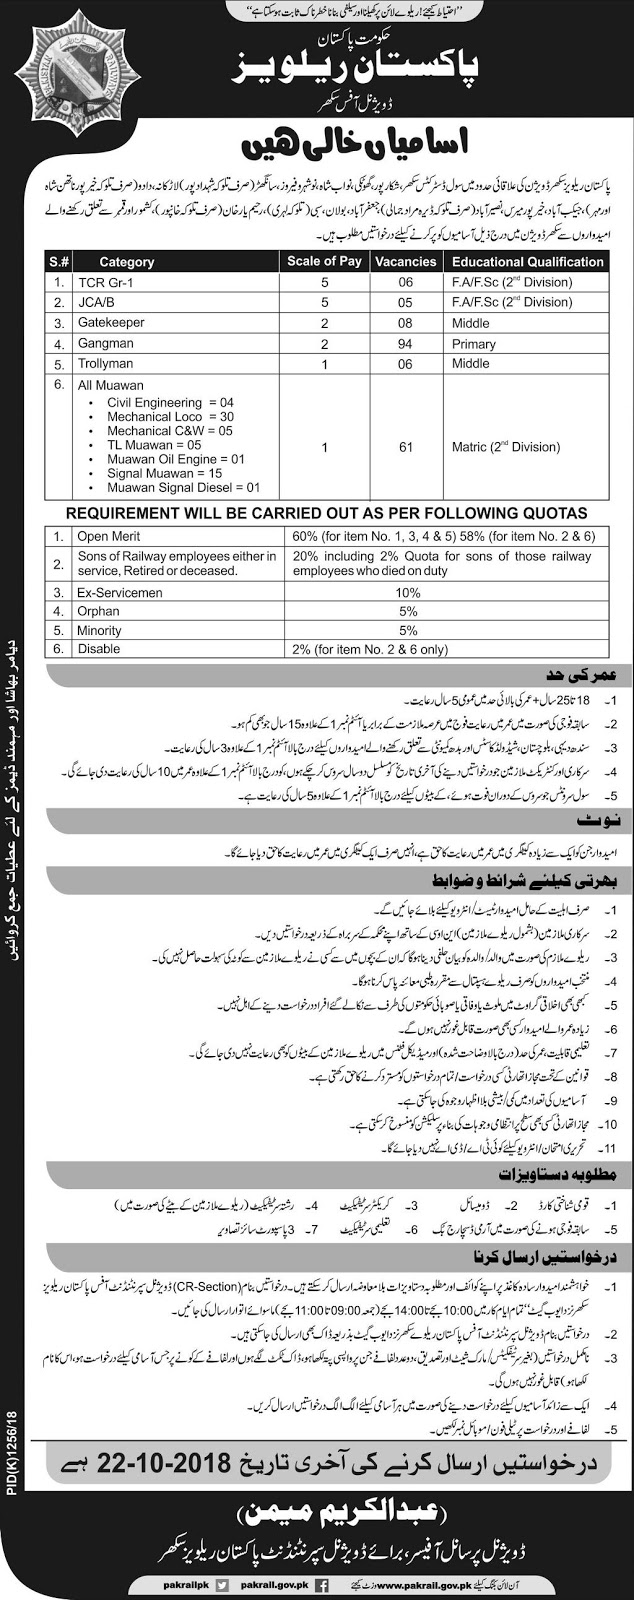 Jobs For Matric FA FSc Middle Primary Pass in Pakistan Railways Sukkkur Division